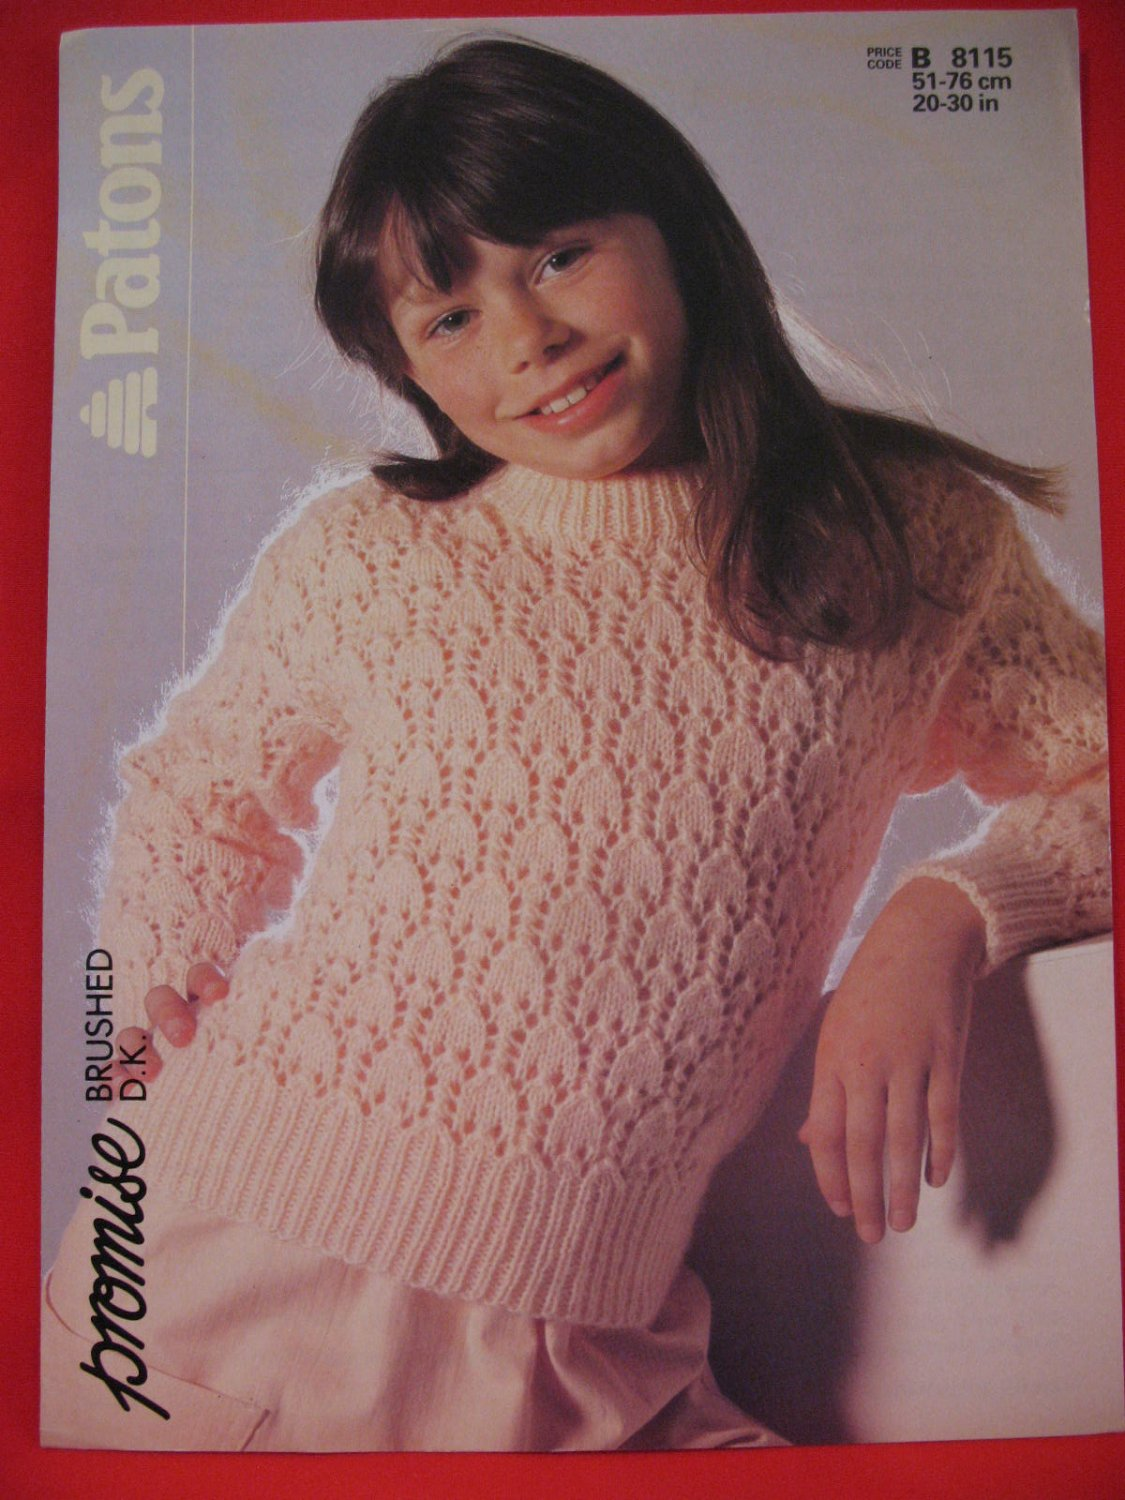 Vintage Patons Lacy Sweater Knitting Pattern Children Sizes 20 - 30 Inches